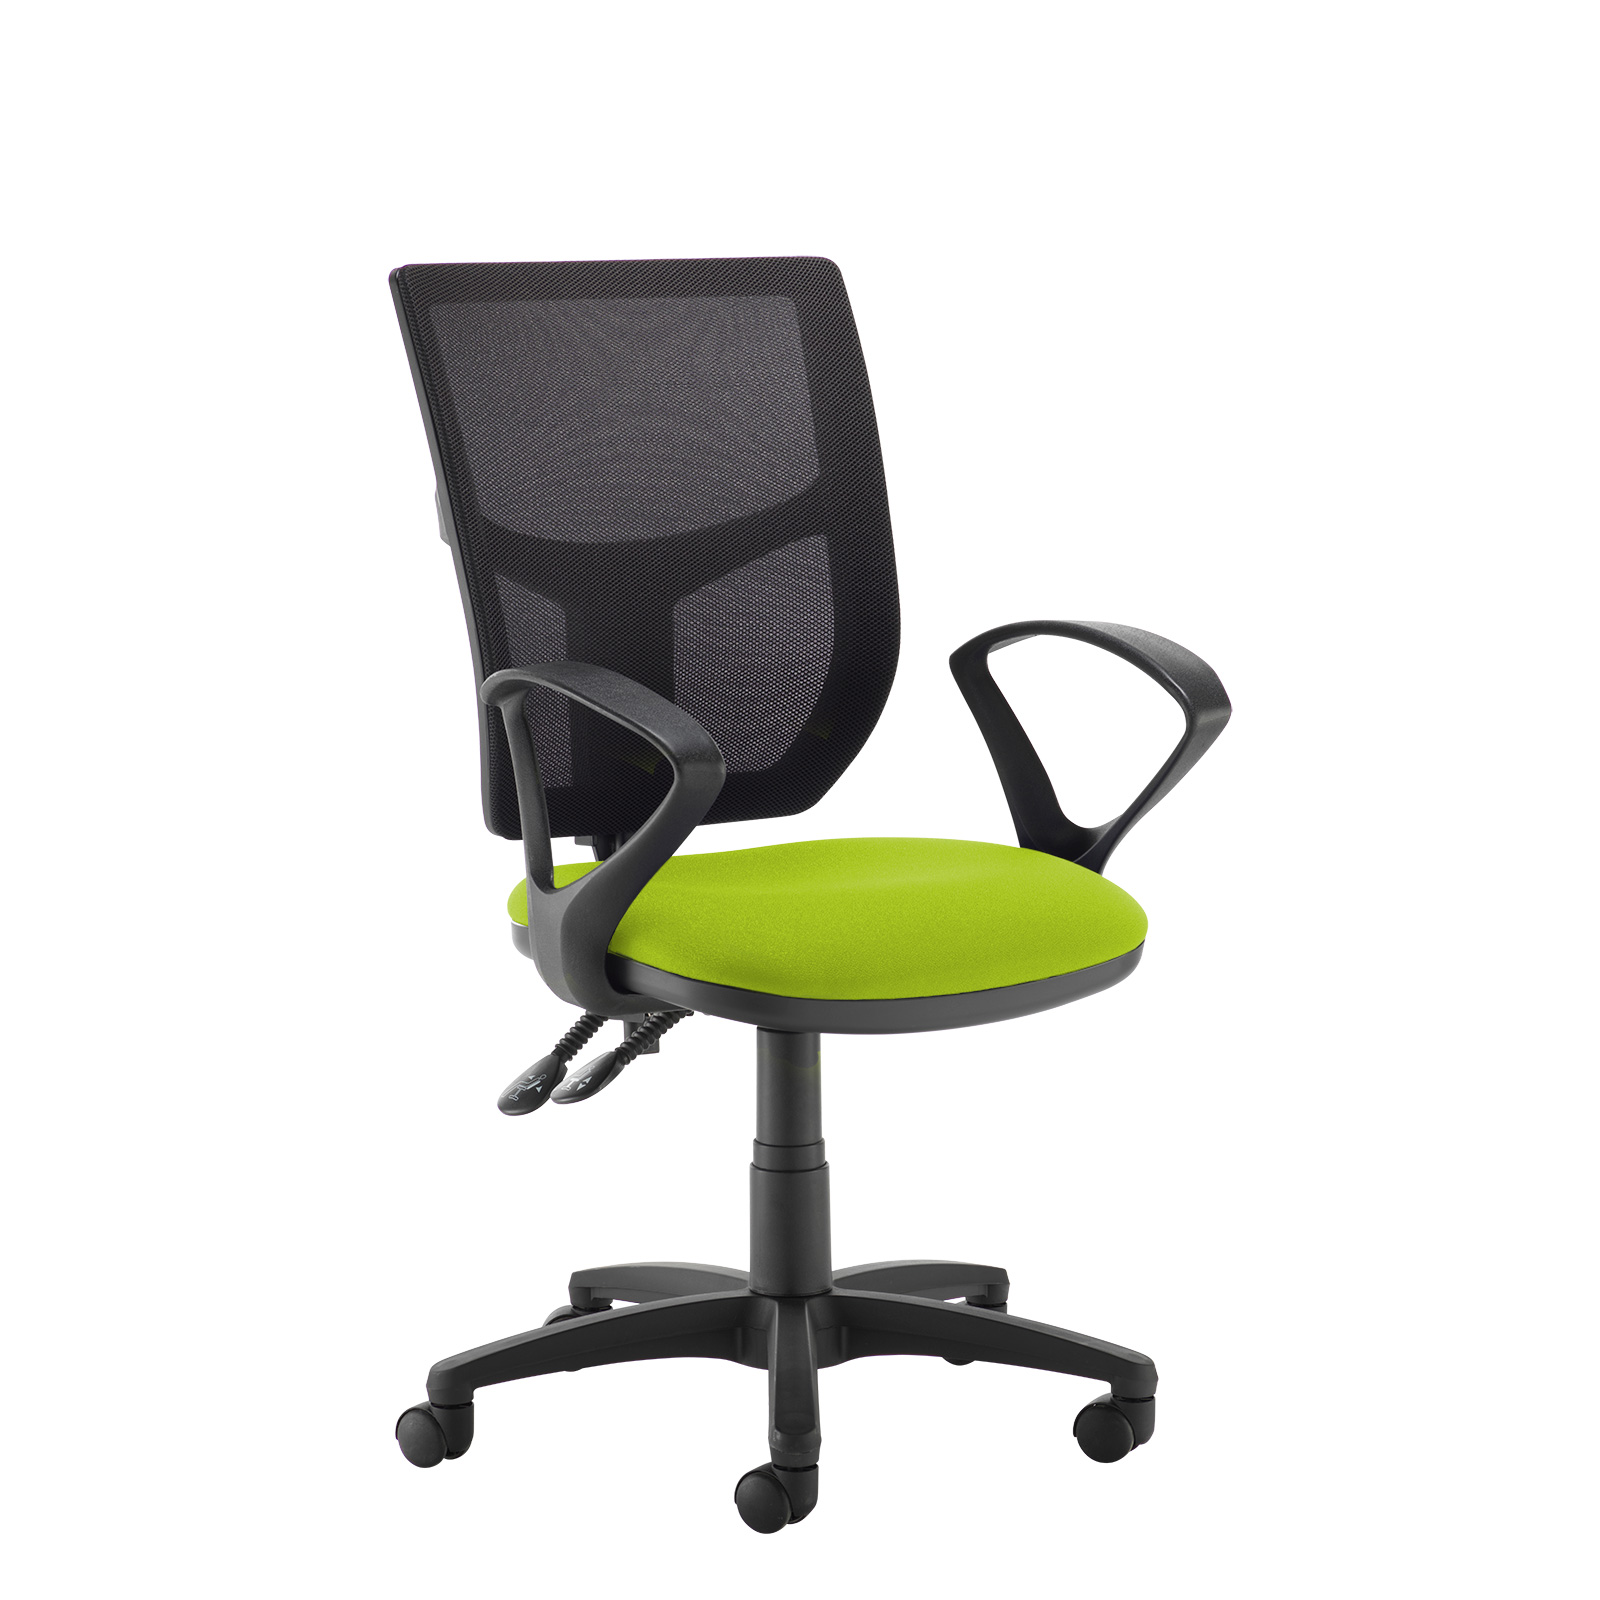 Desk Chairs Altino 2 lever high mesh back operators chair with fixed arms - green